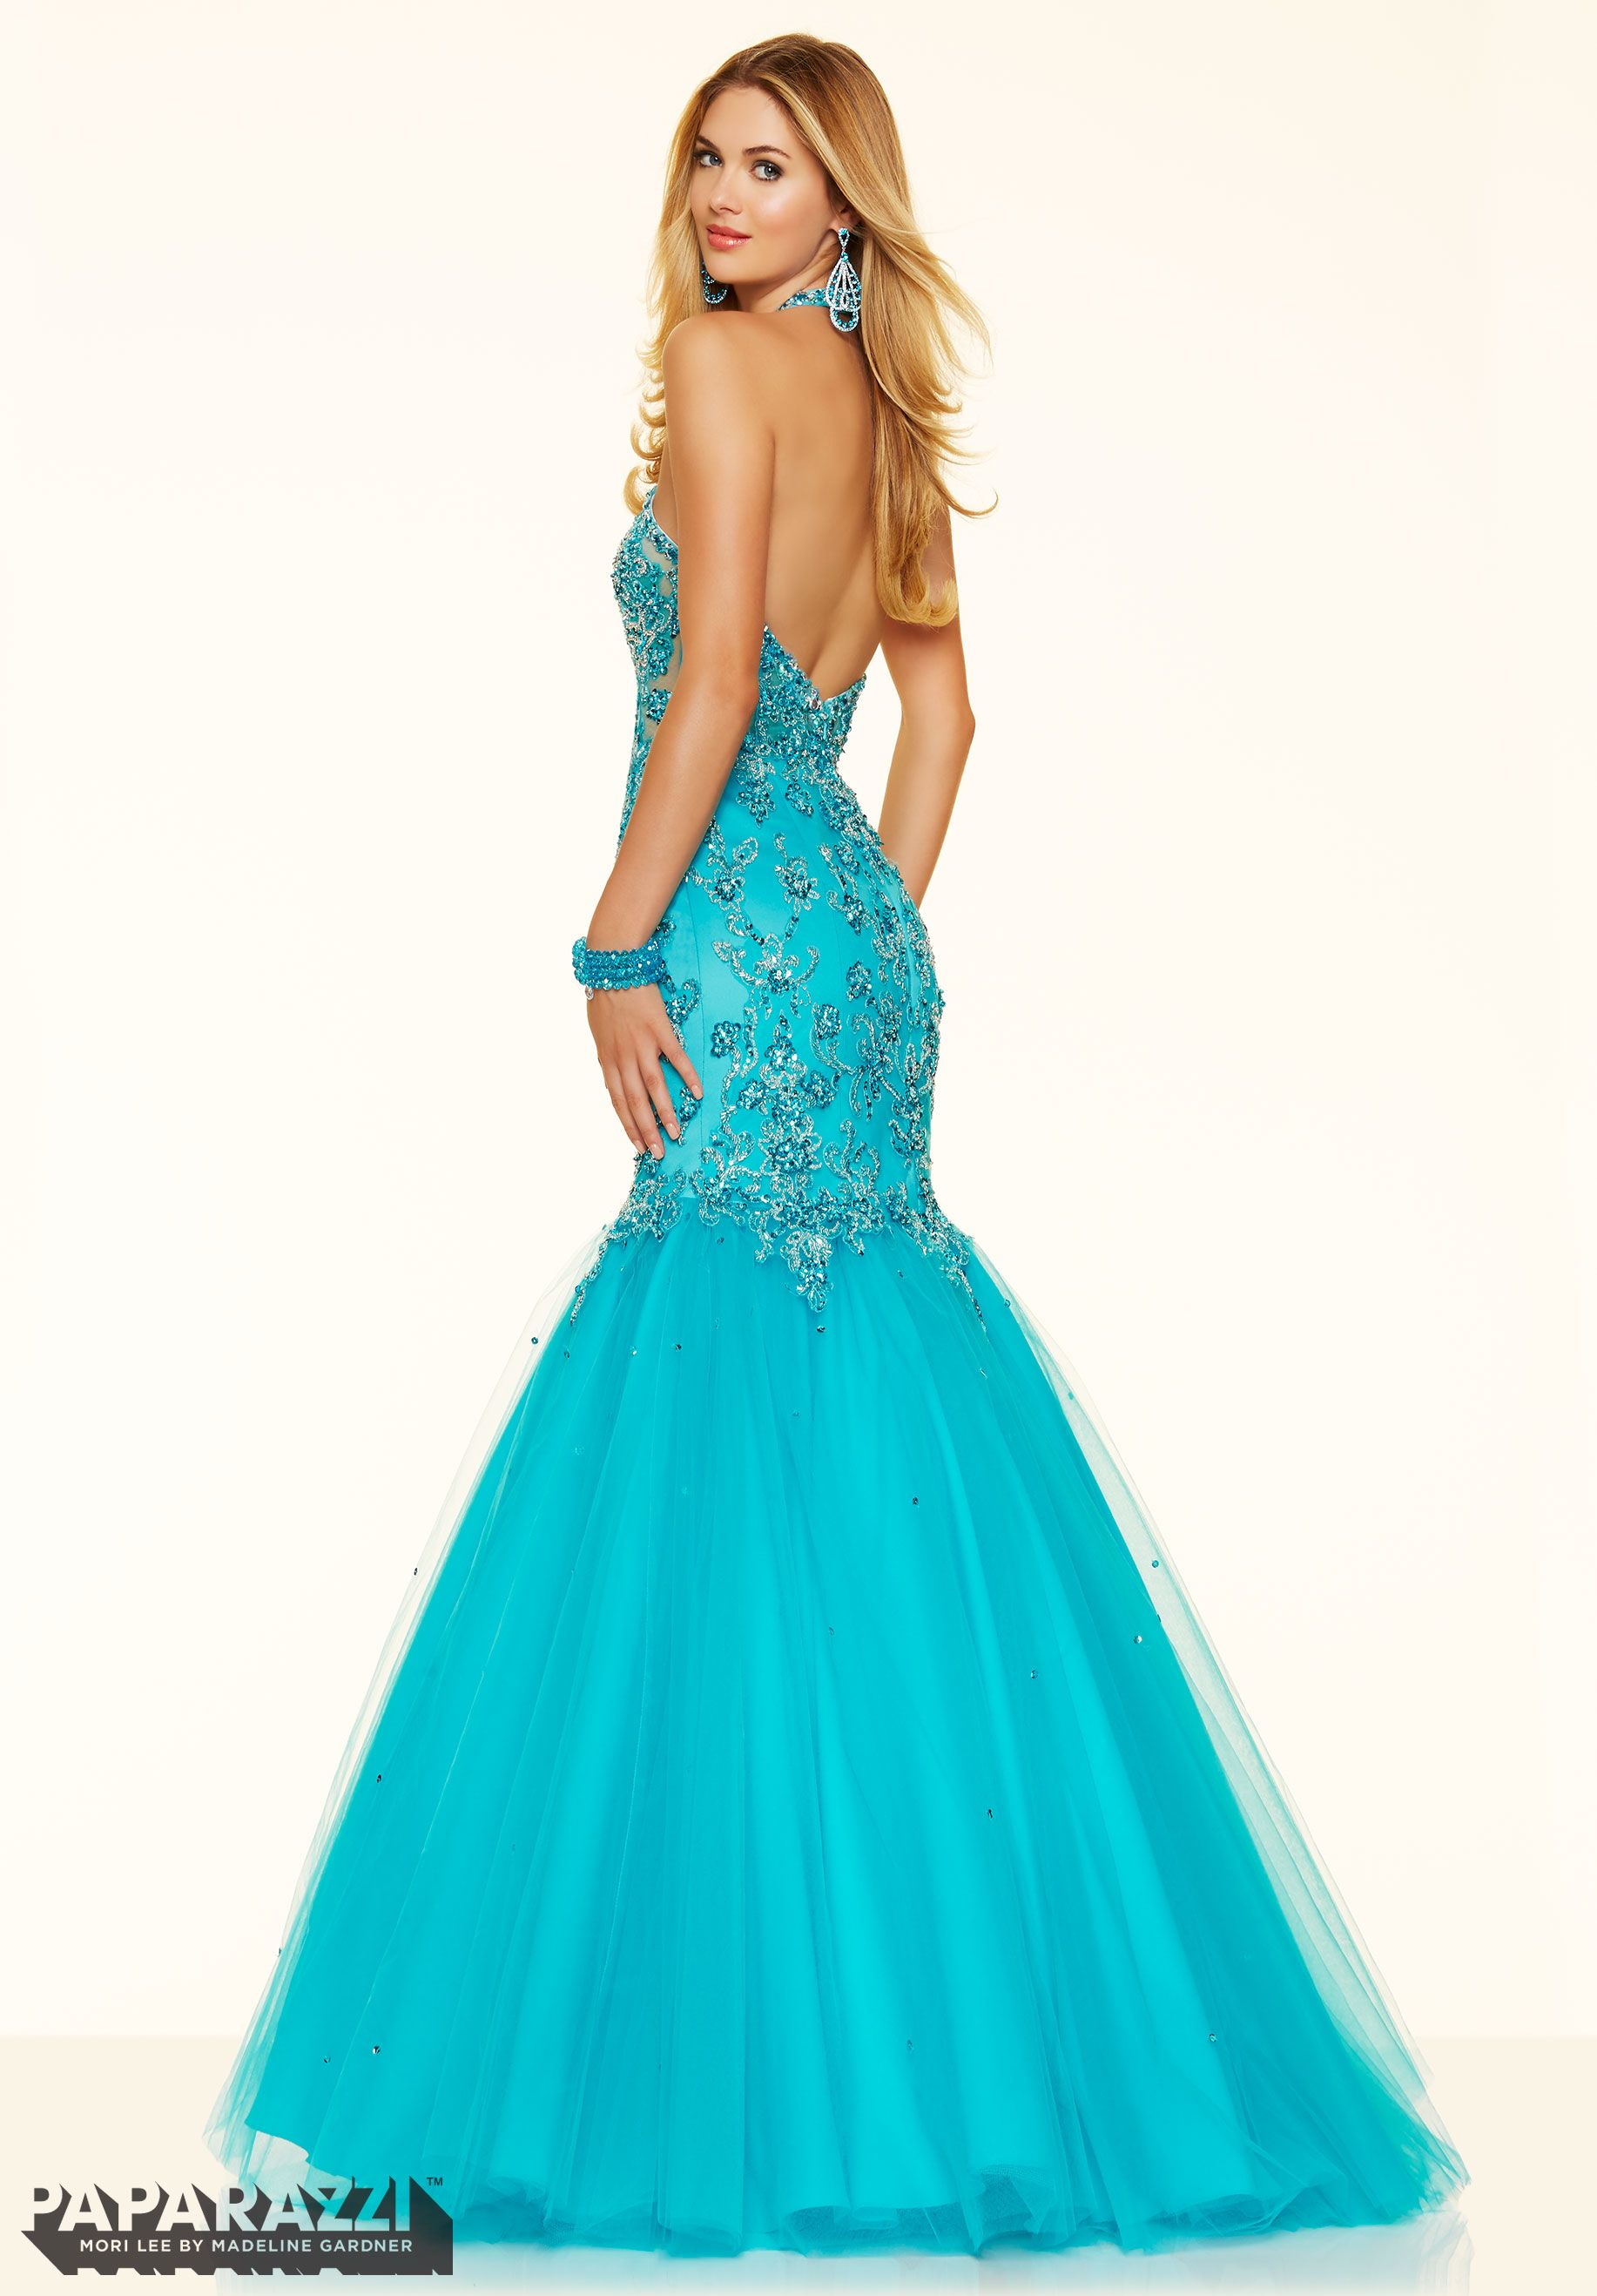 Prom Dresses by Paparazzi Prom - Dress Style 98026 | PROM ...